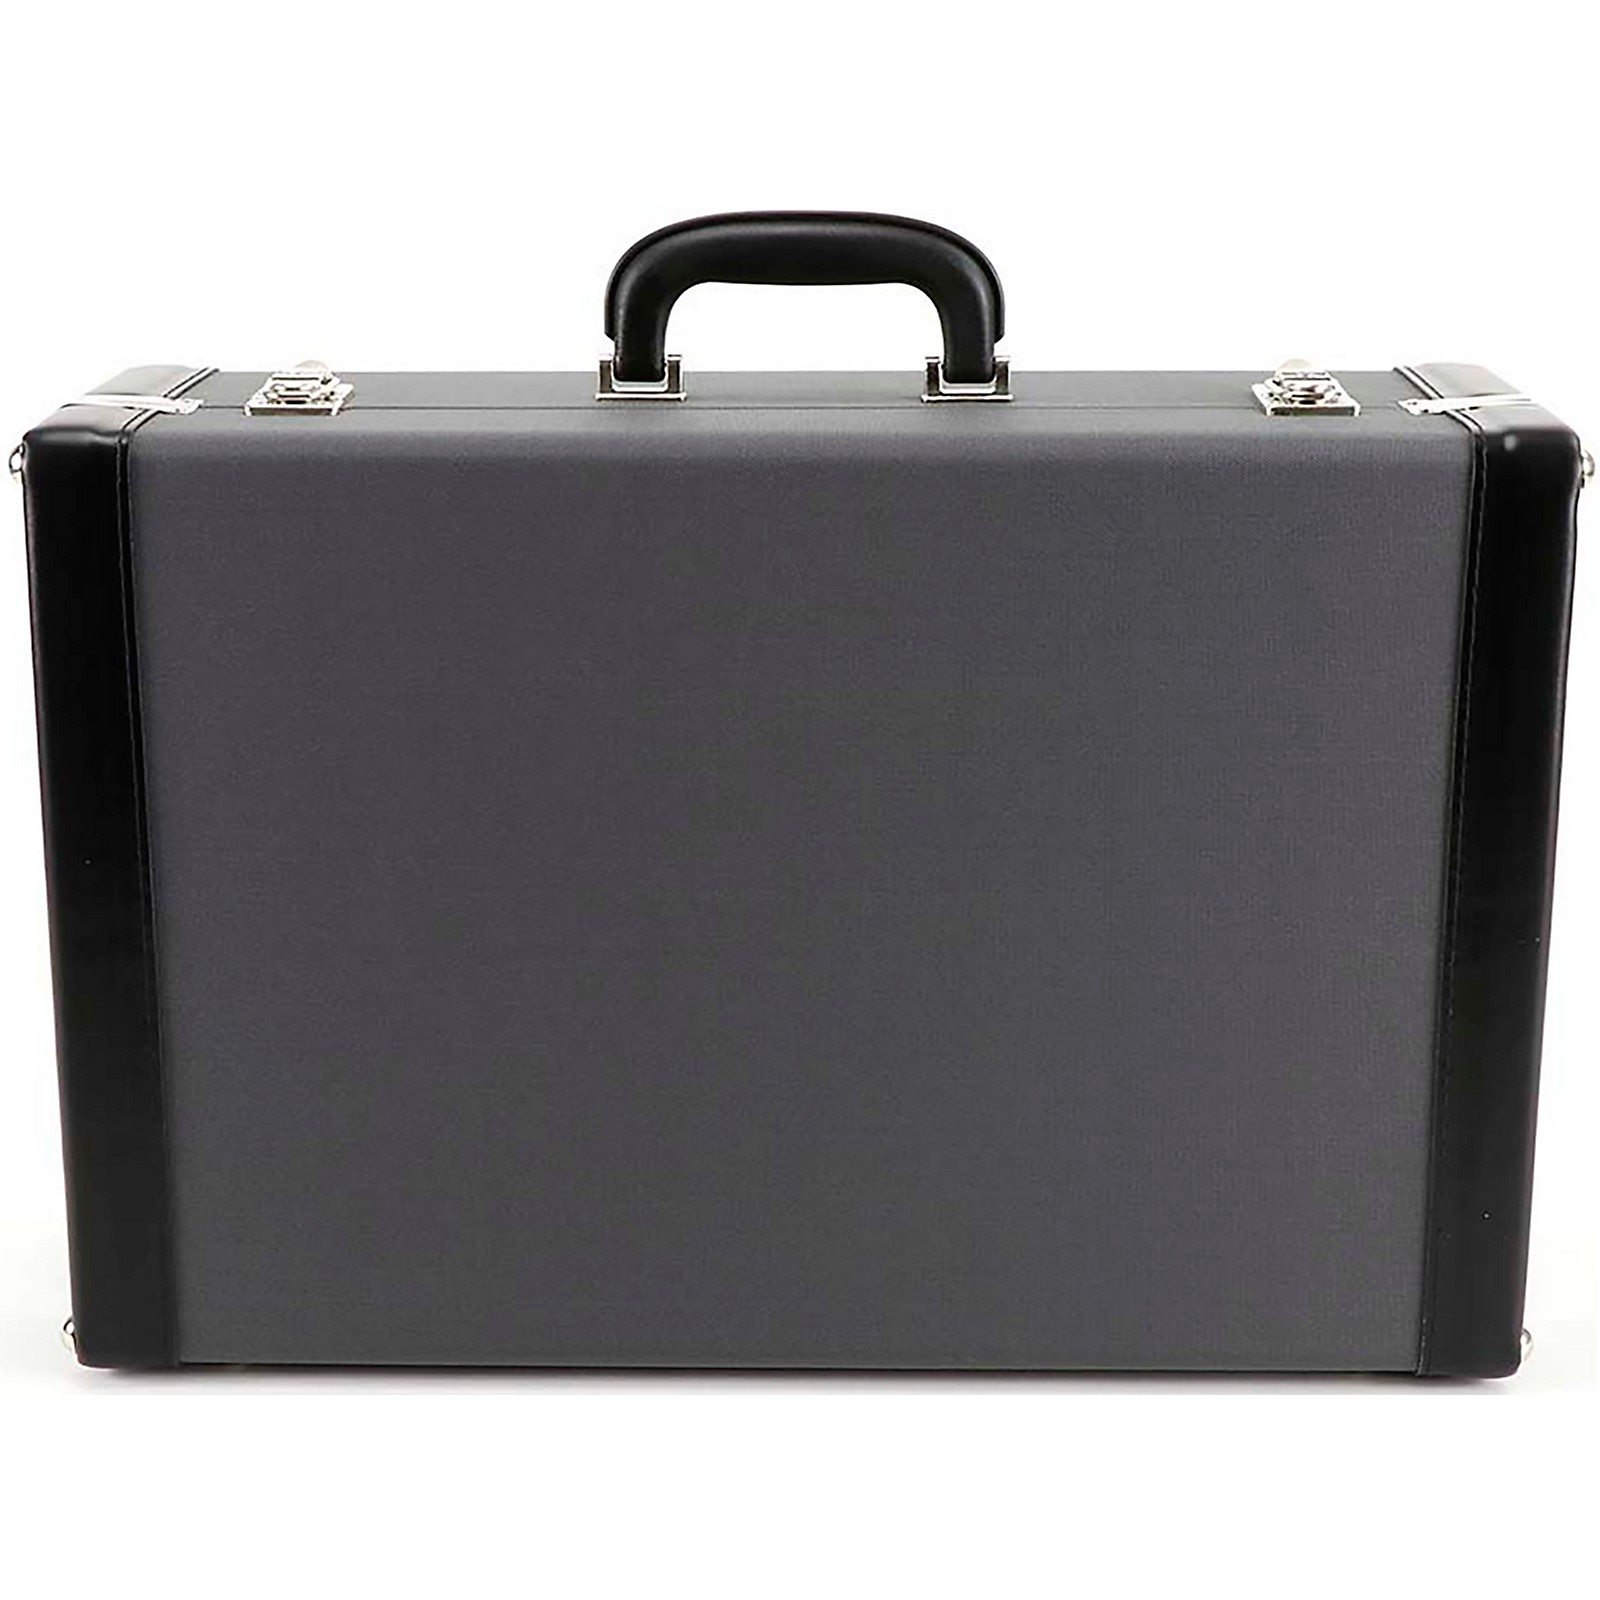 J. Winter JW 776 Deluxe Wood Case For 3 Trumpets